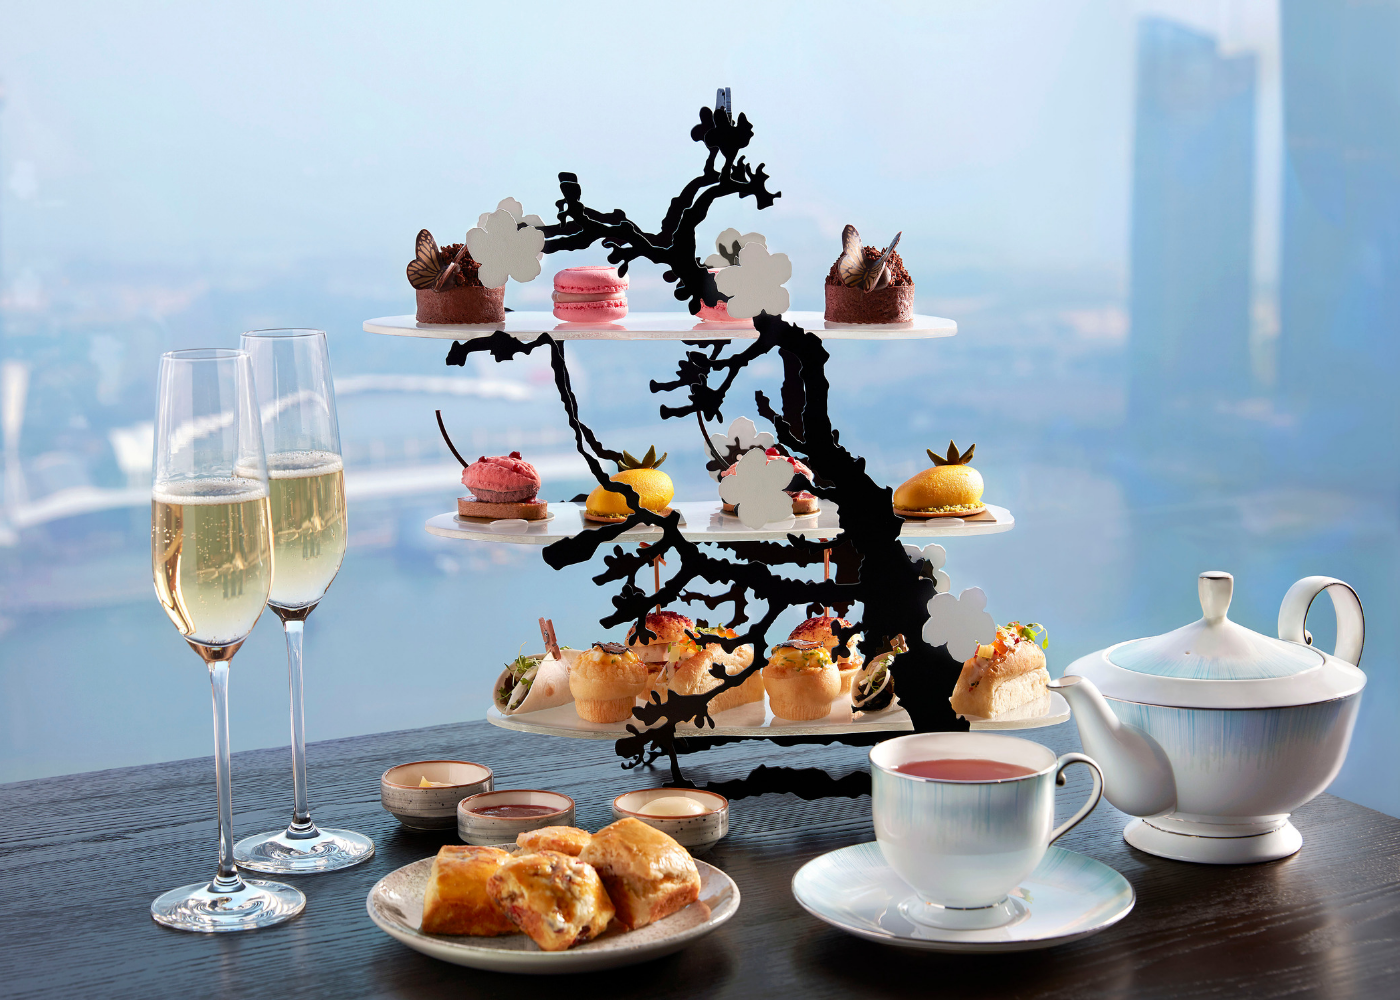 Skai's new high tea | Afternoon tea Singapore